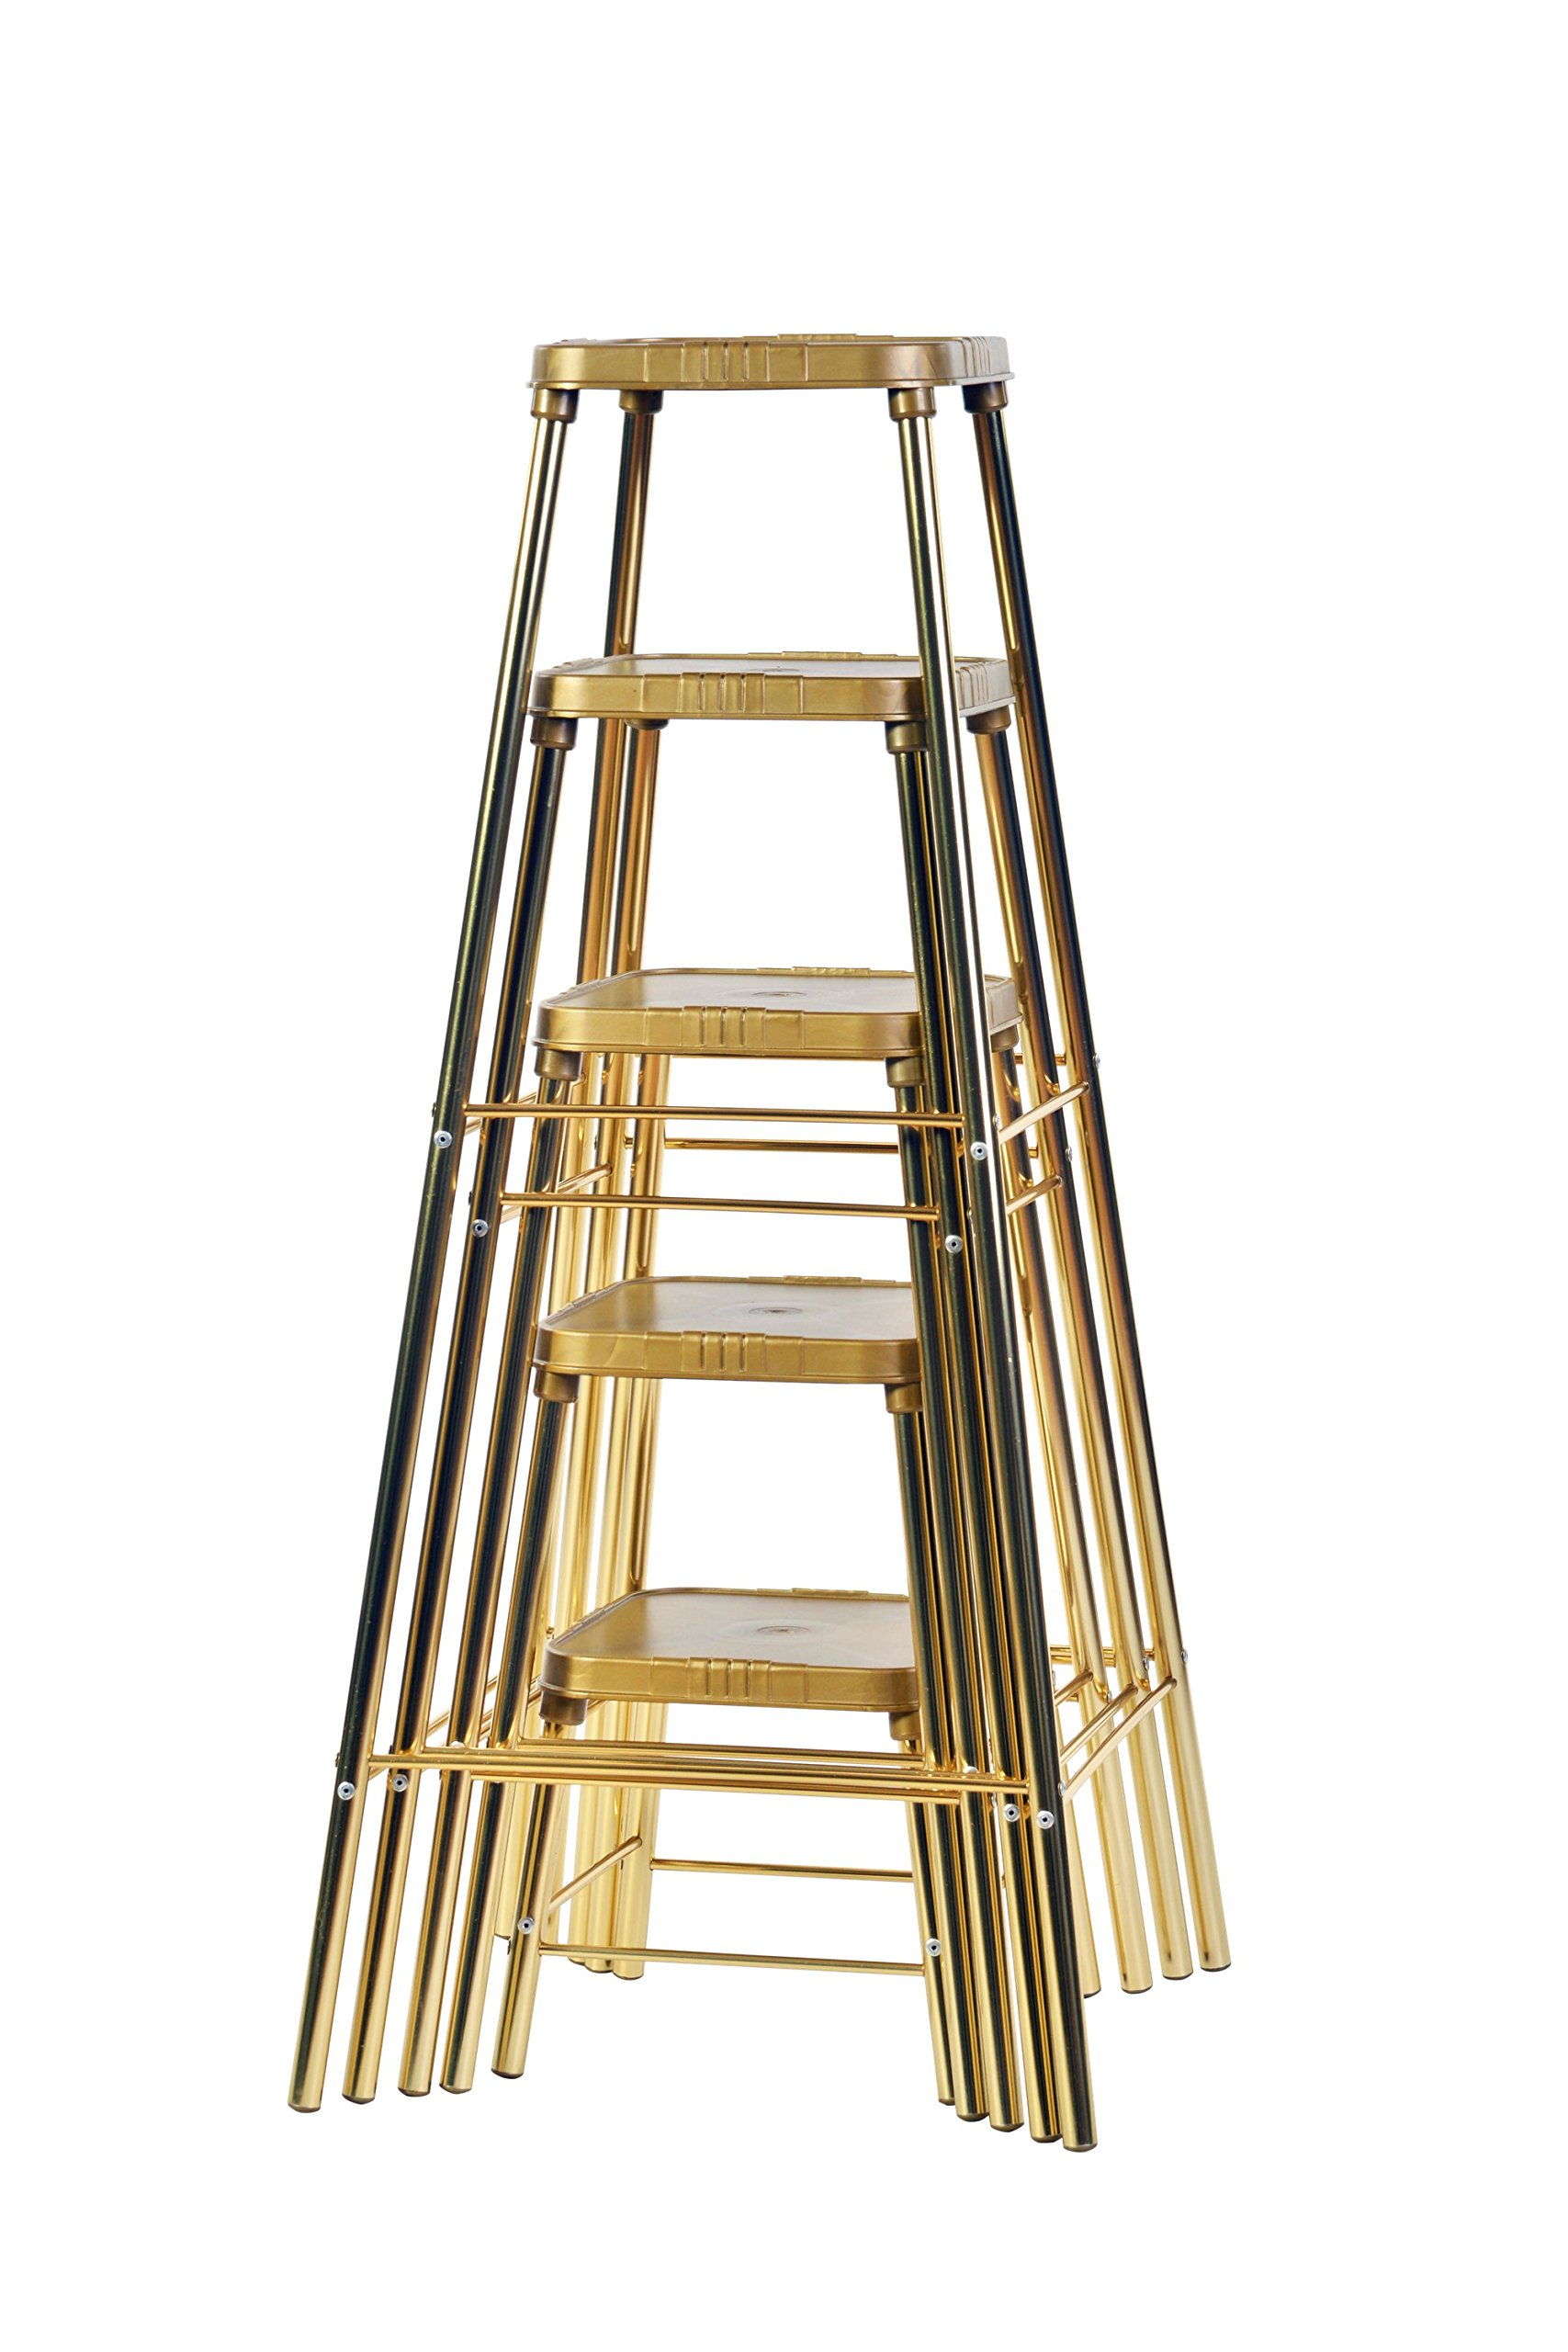 XL Industries Nesting Display Stands-Set of Five